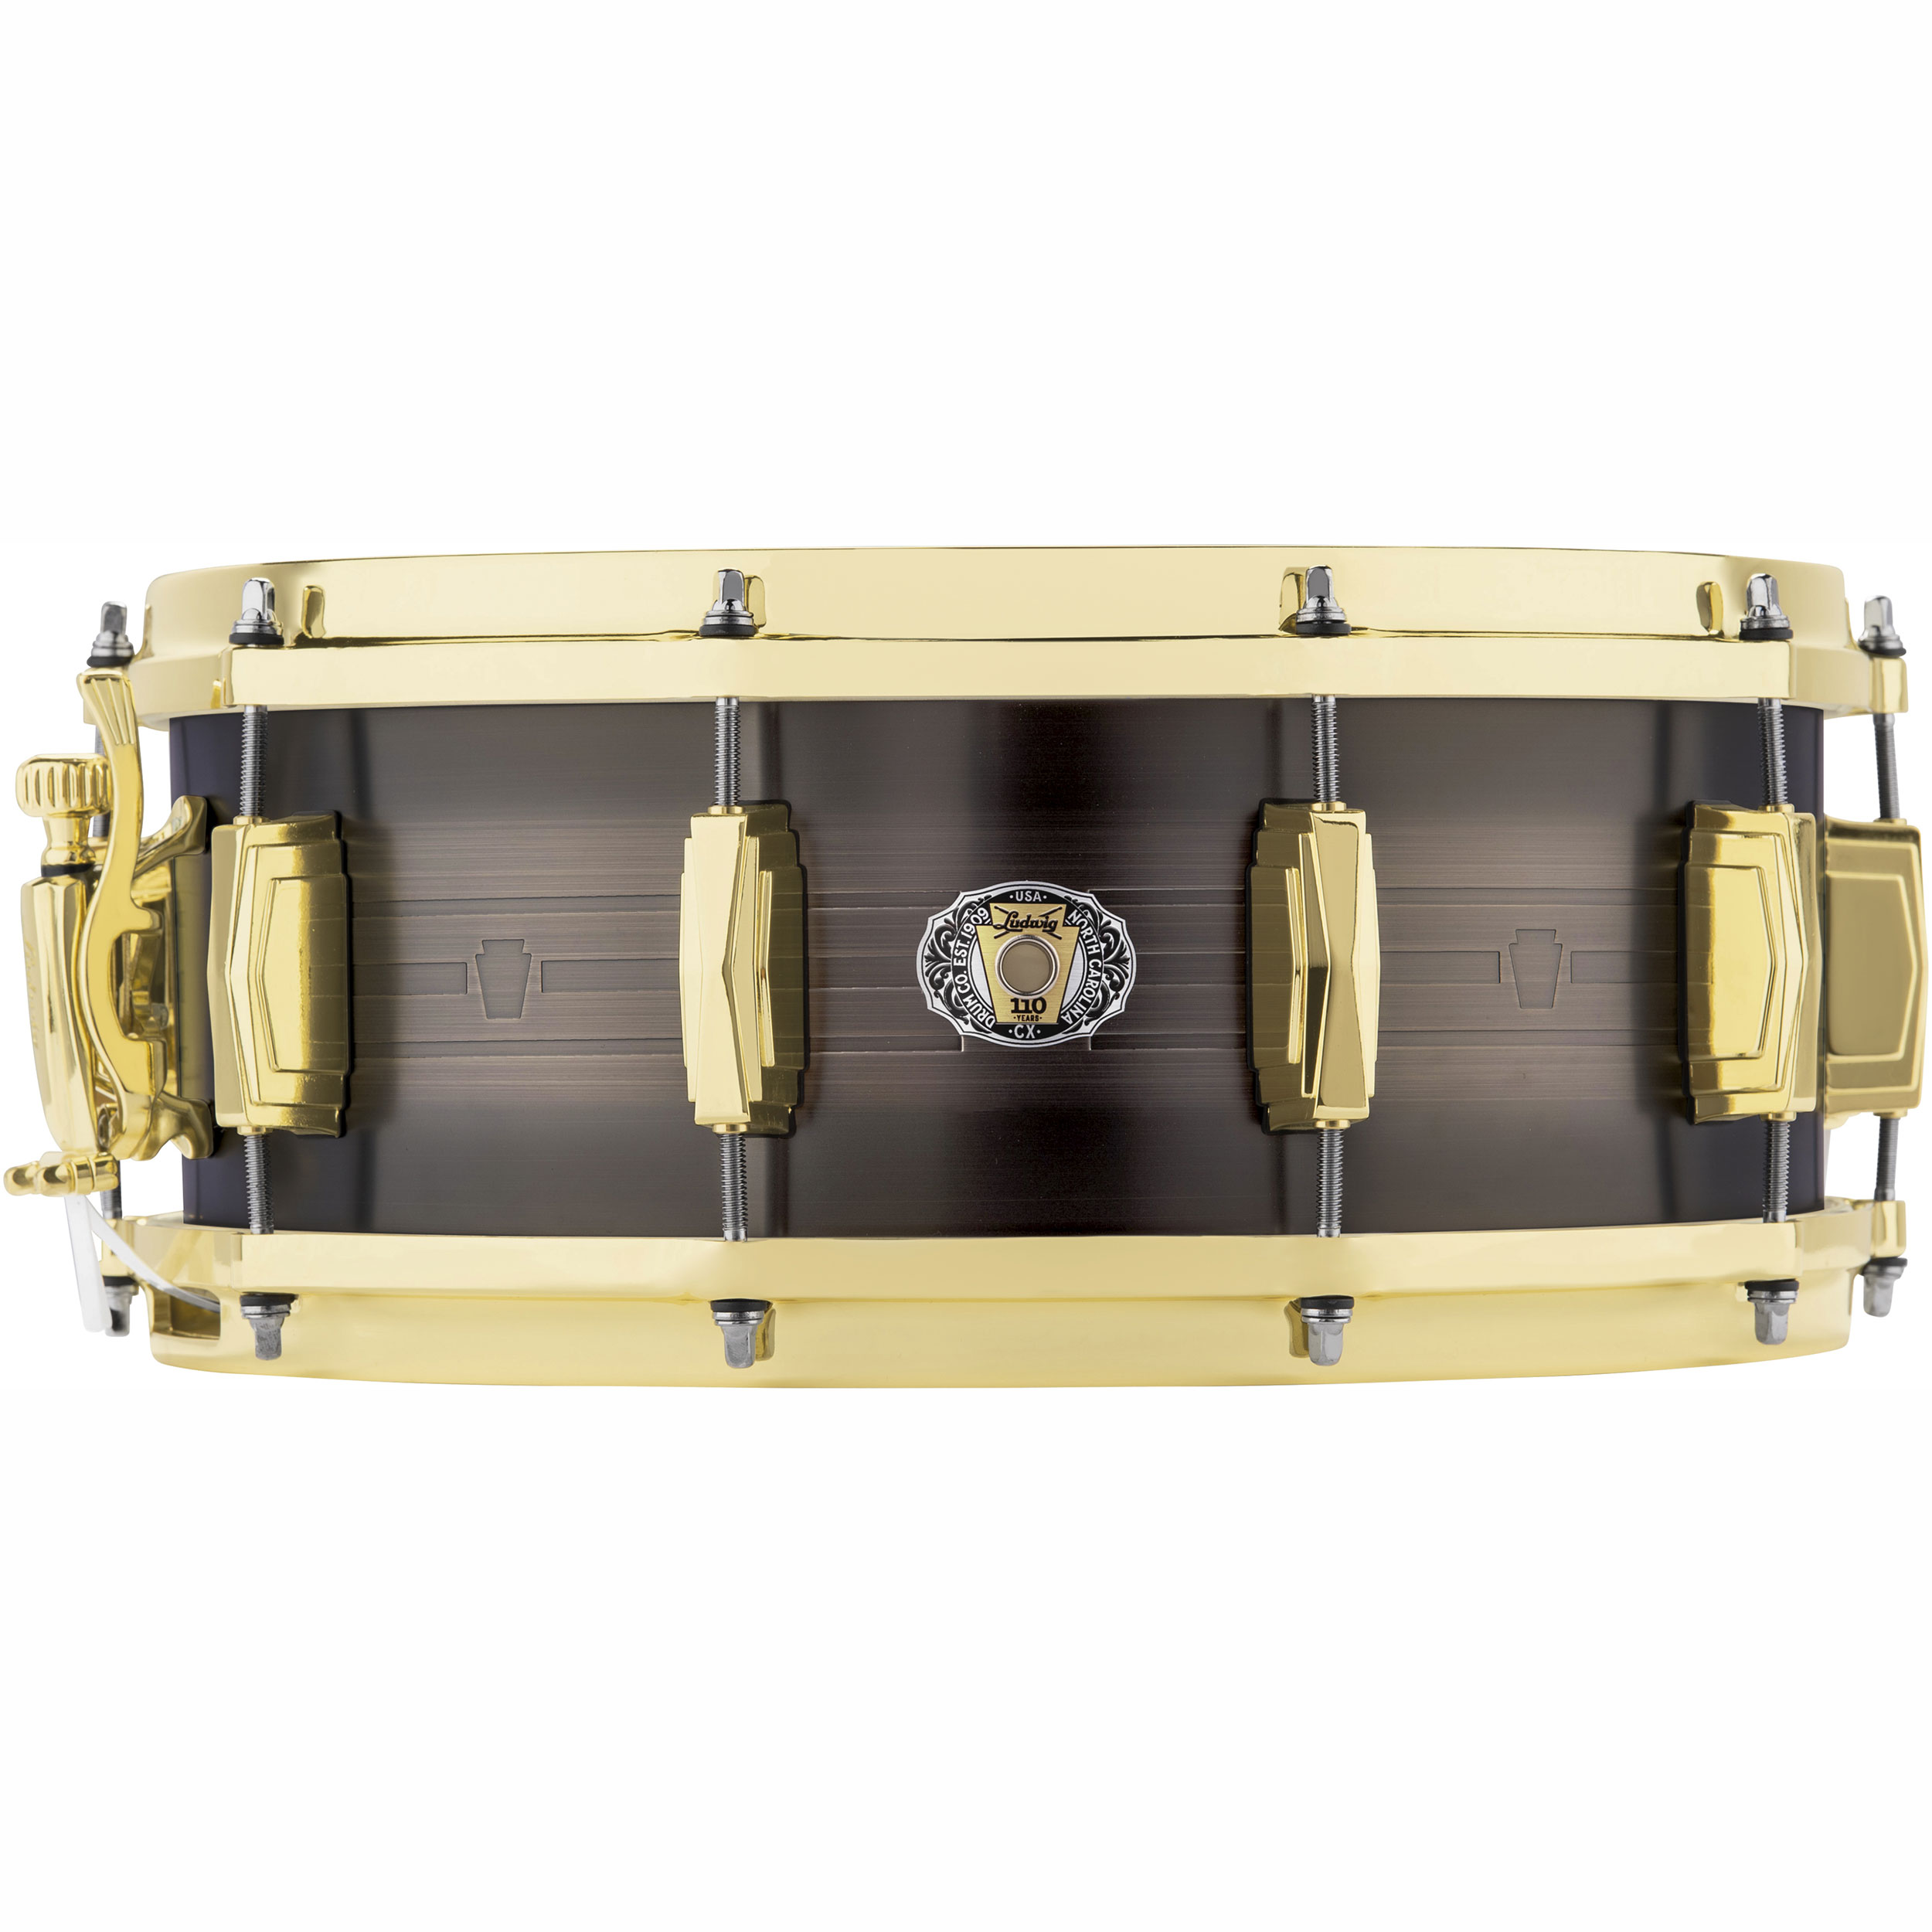 "Ludwig 5.5"" x 14"" 110th Anniversary 1mm Brass Heirloom Snare Drum"